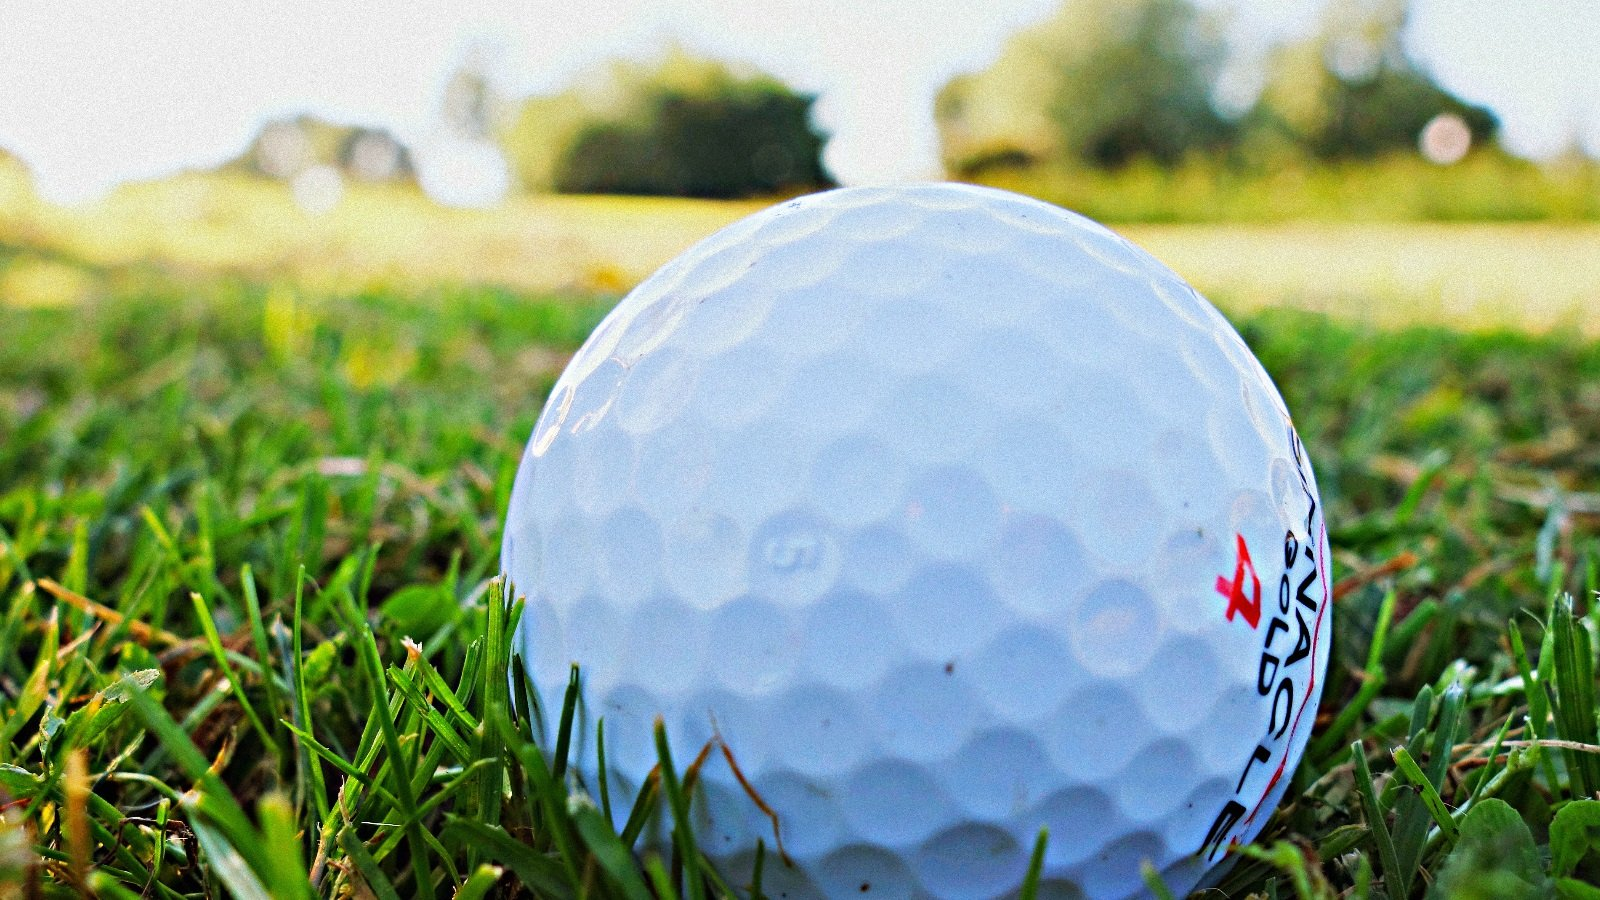 Best Golf Ball 2018 The Perfect Golf Balls For Putting